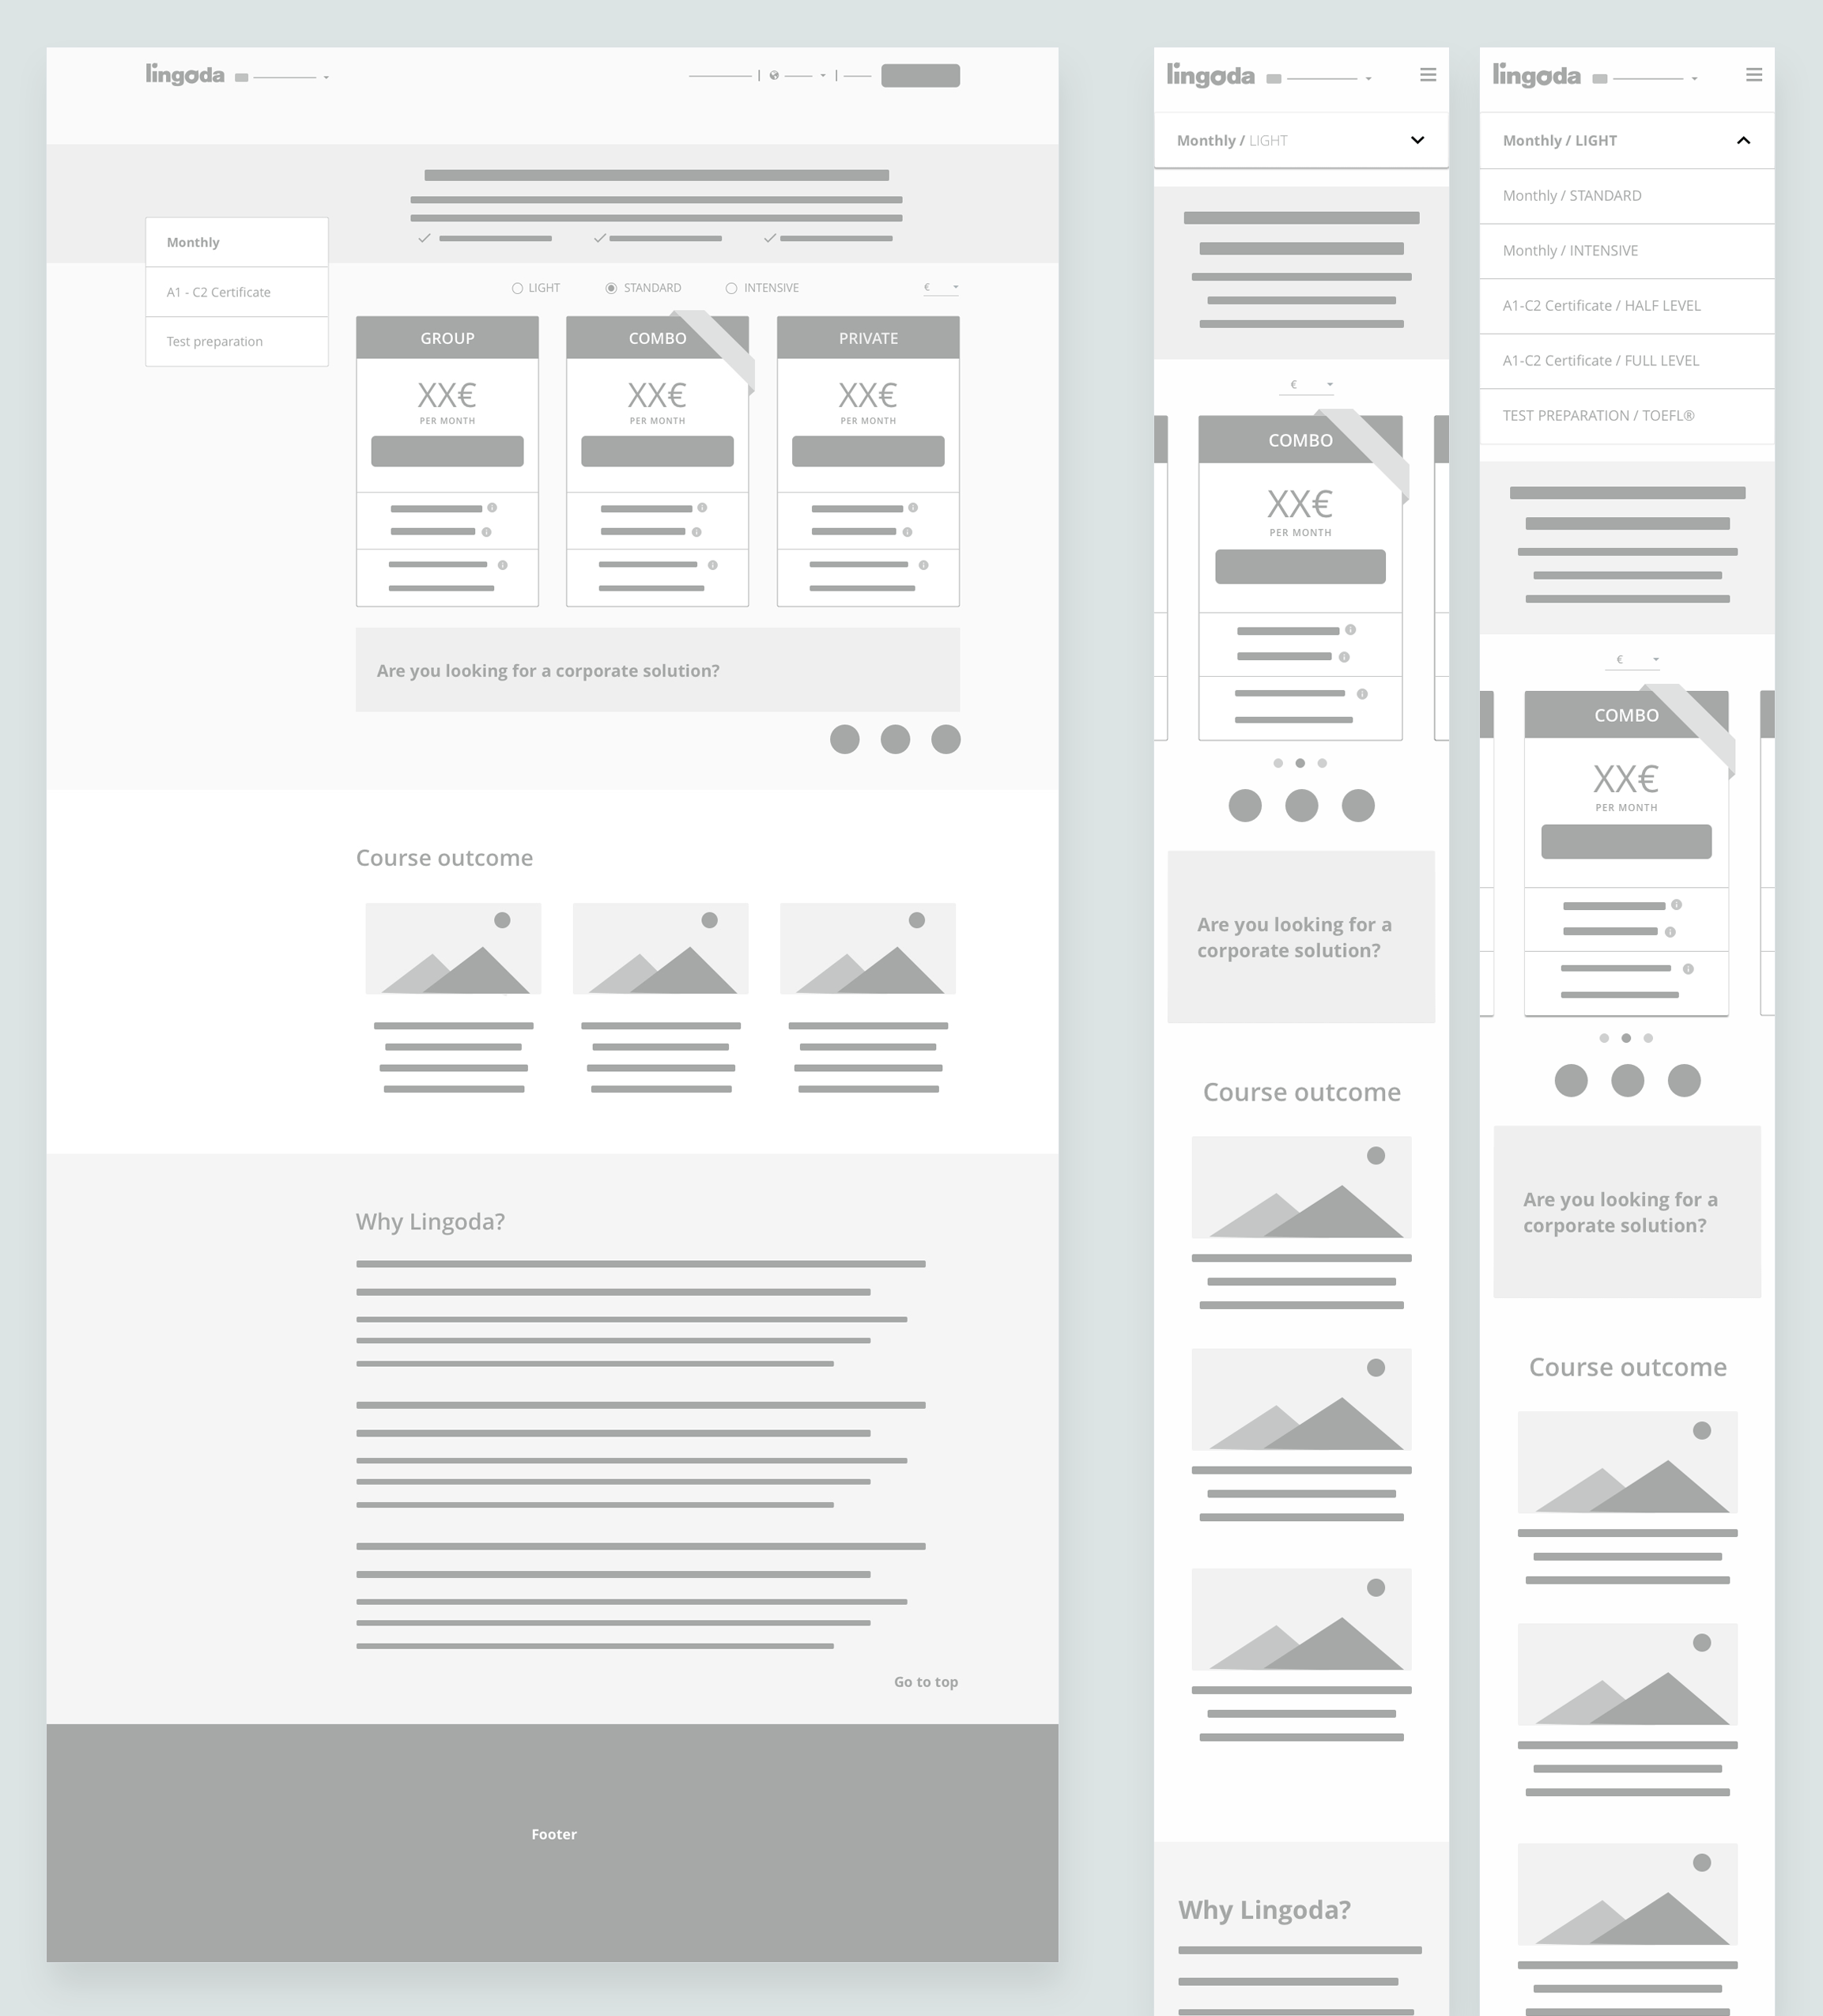 wireframes_lingoda+long